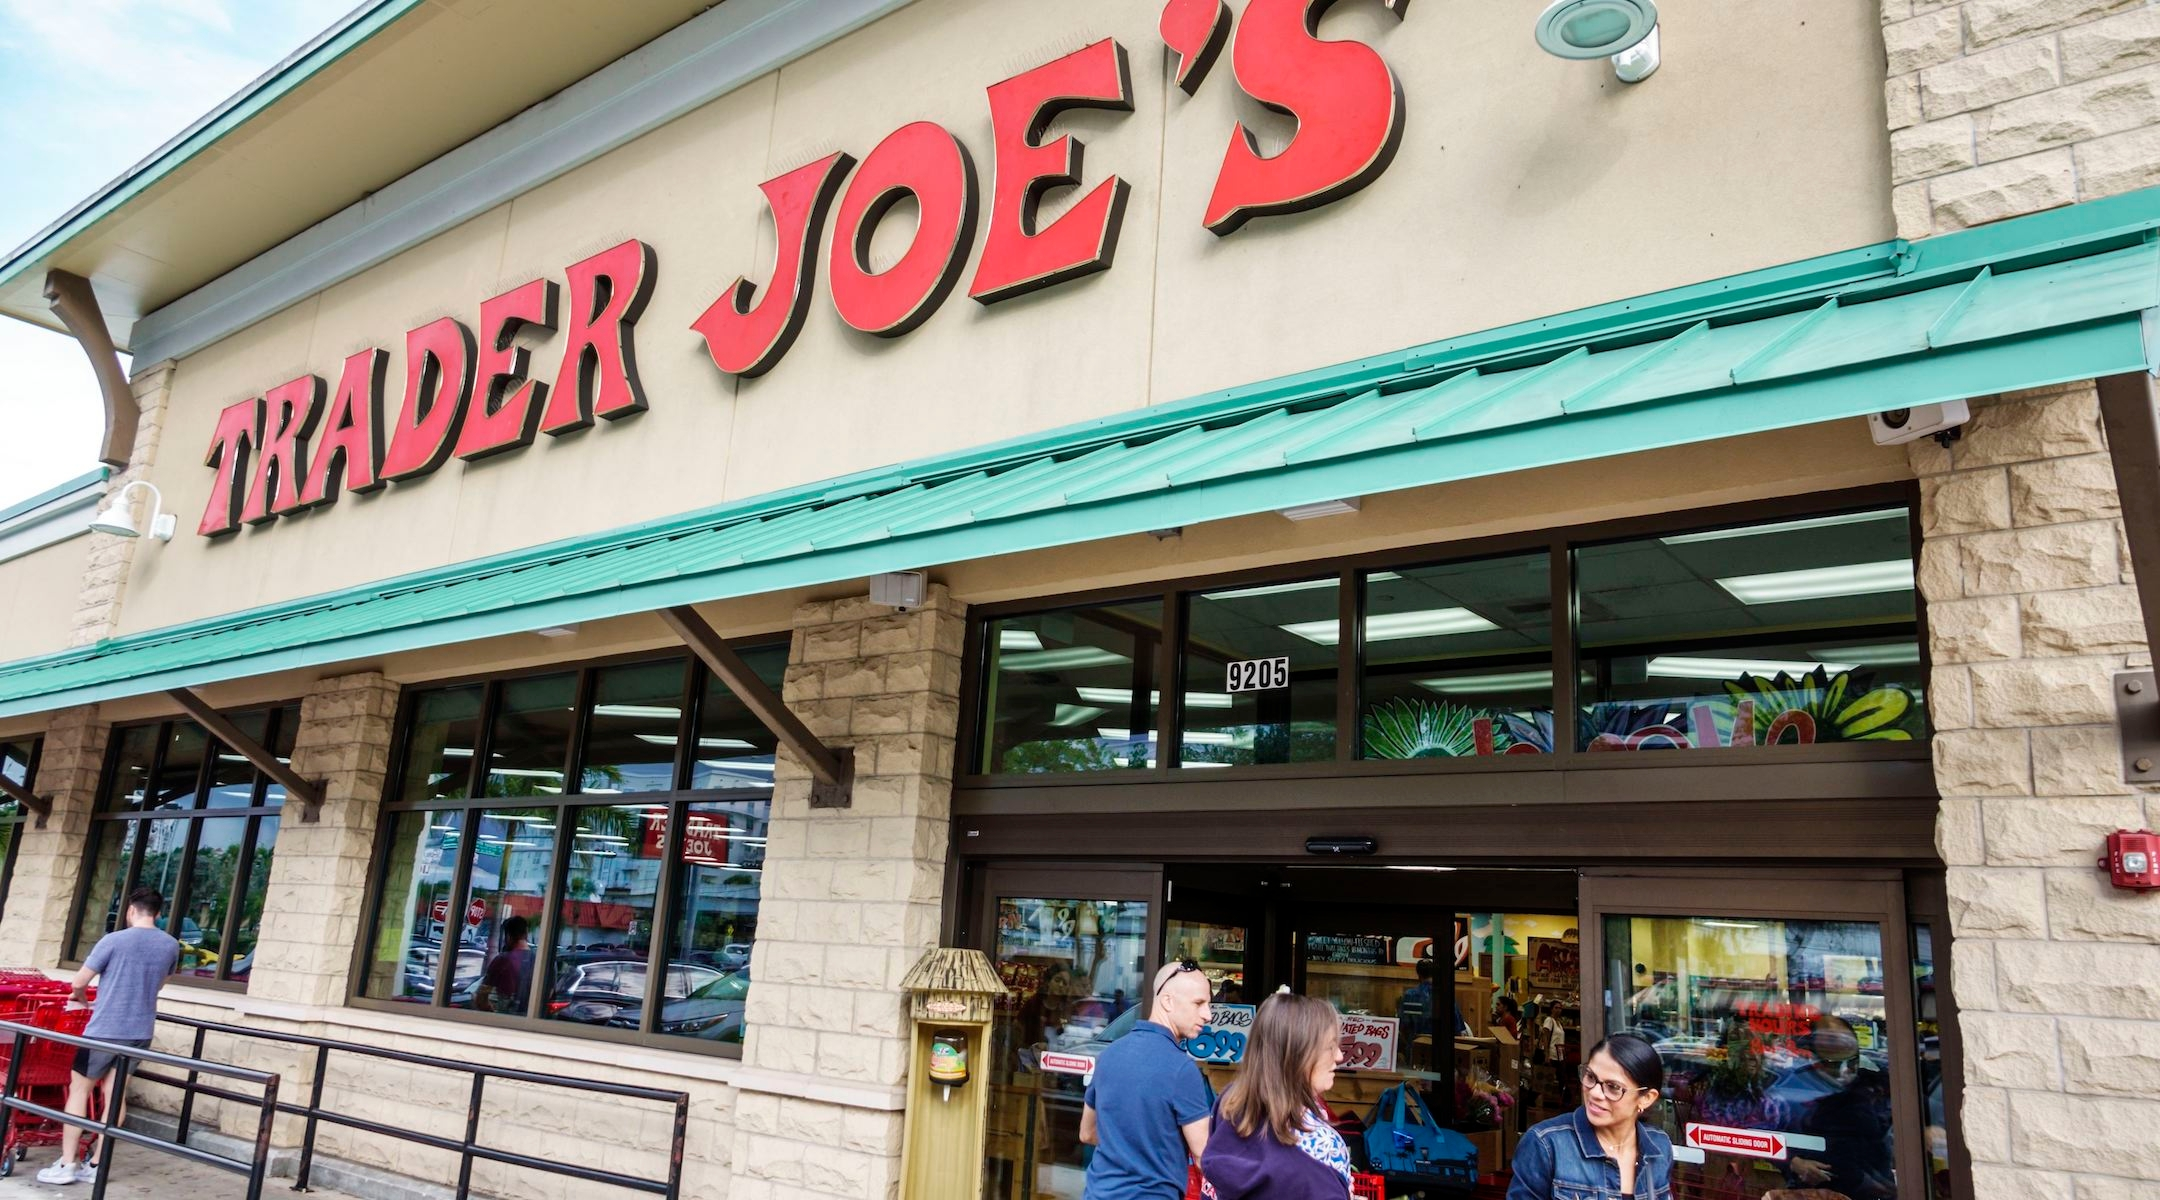 Trader Joe's is not your synagogue  But what if? - Jewish